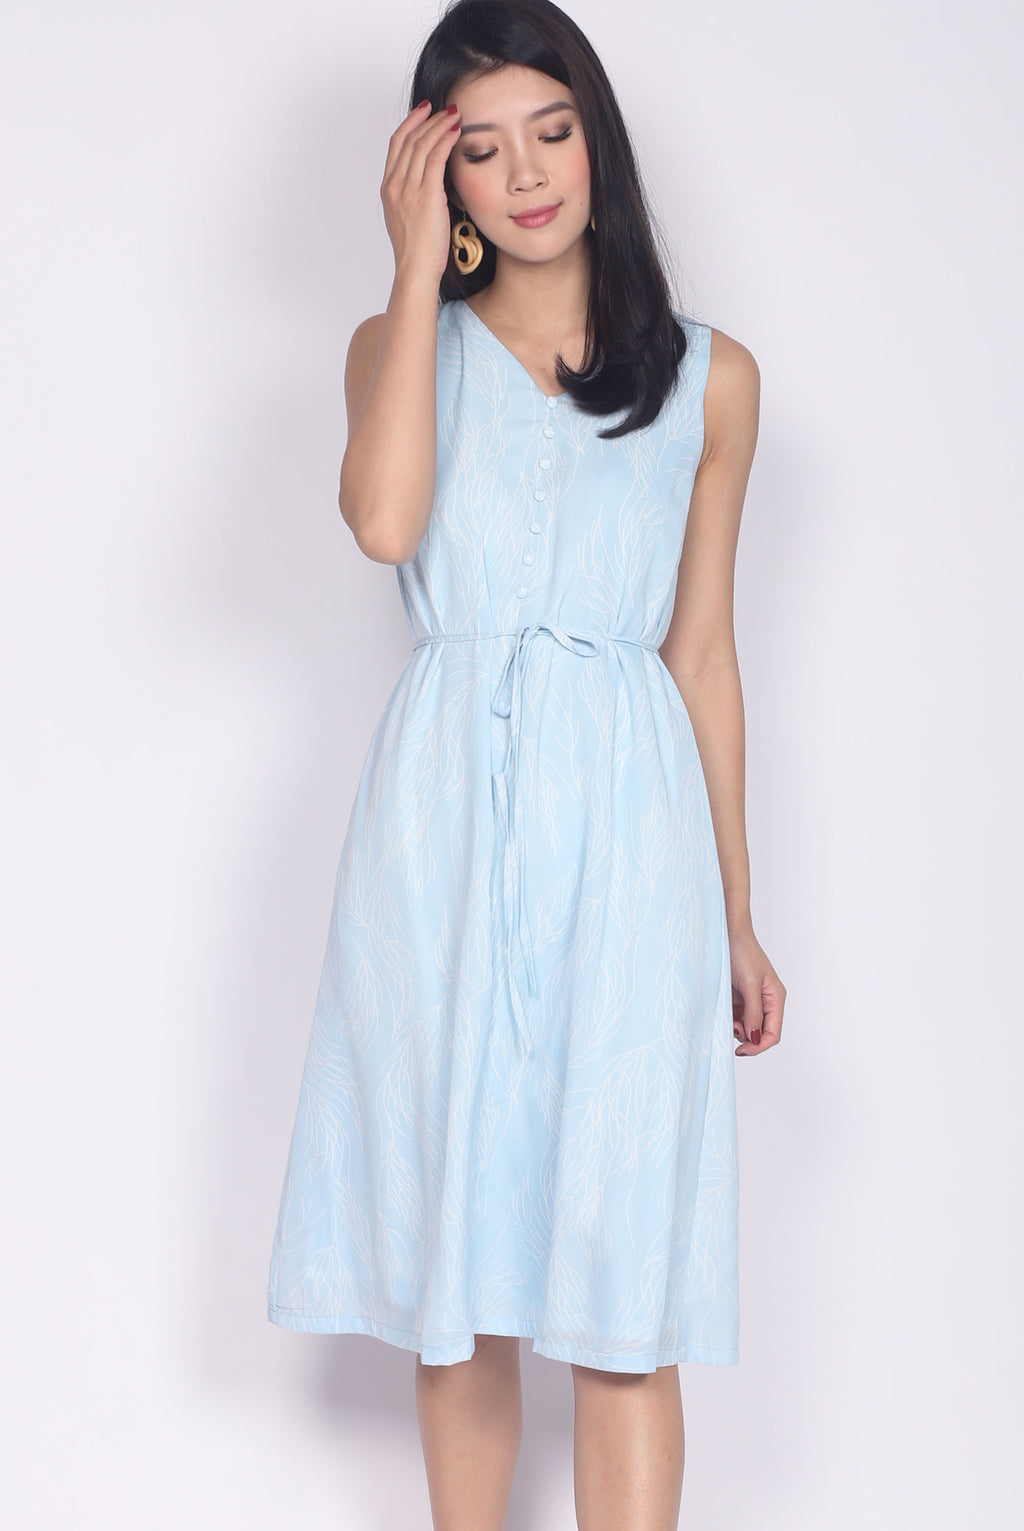 Adair Stem Buttons Dress In Skyblue